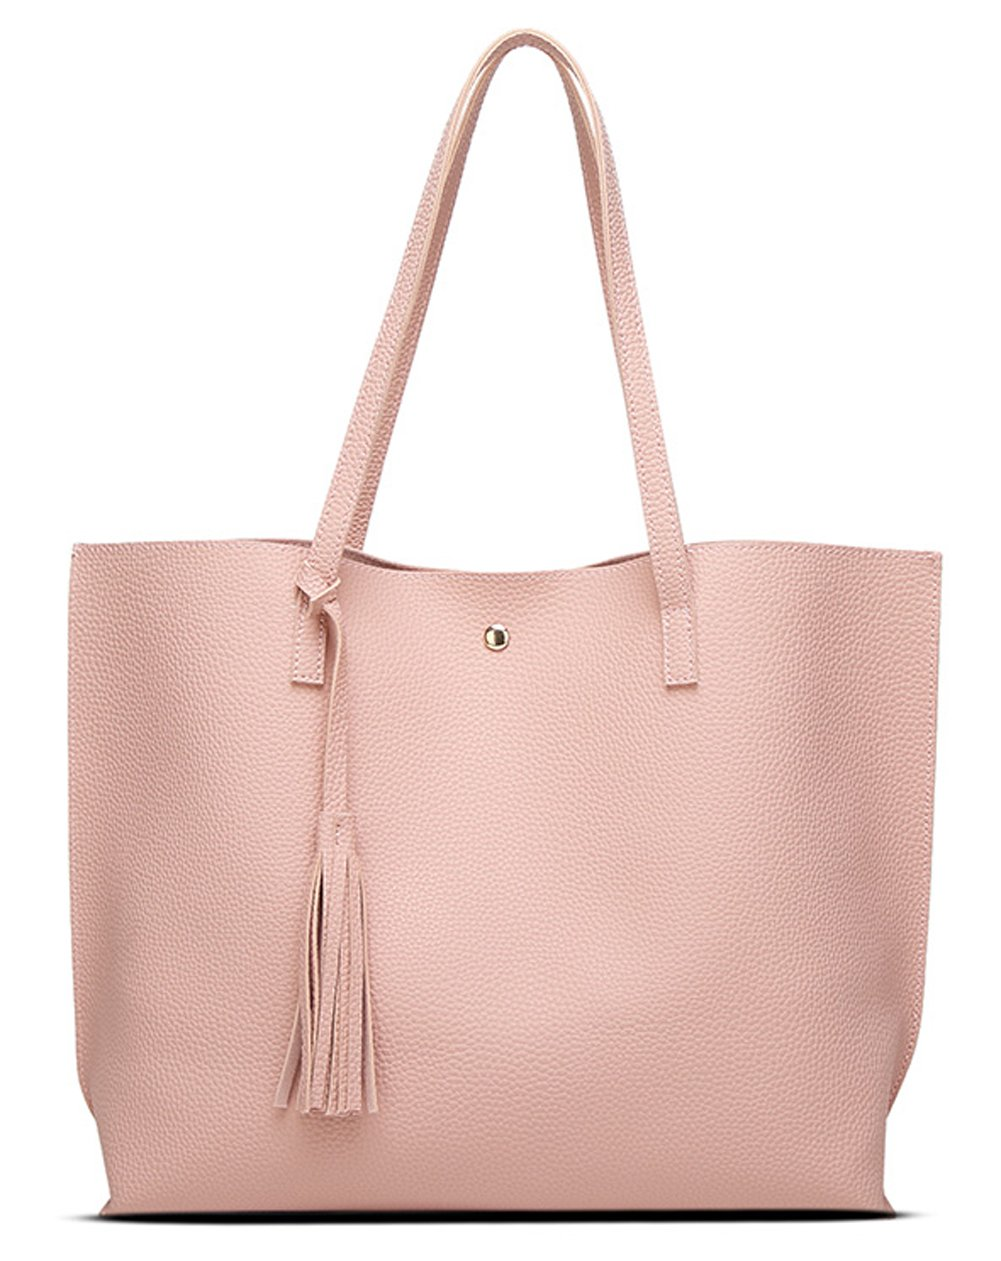 Women's Soft Leather Tote Shoulder Bag from Dreubea, Big Capacity Tassel Handbag Pink